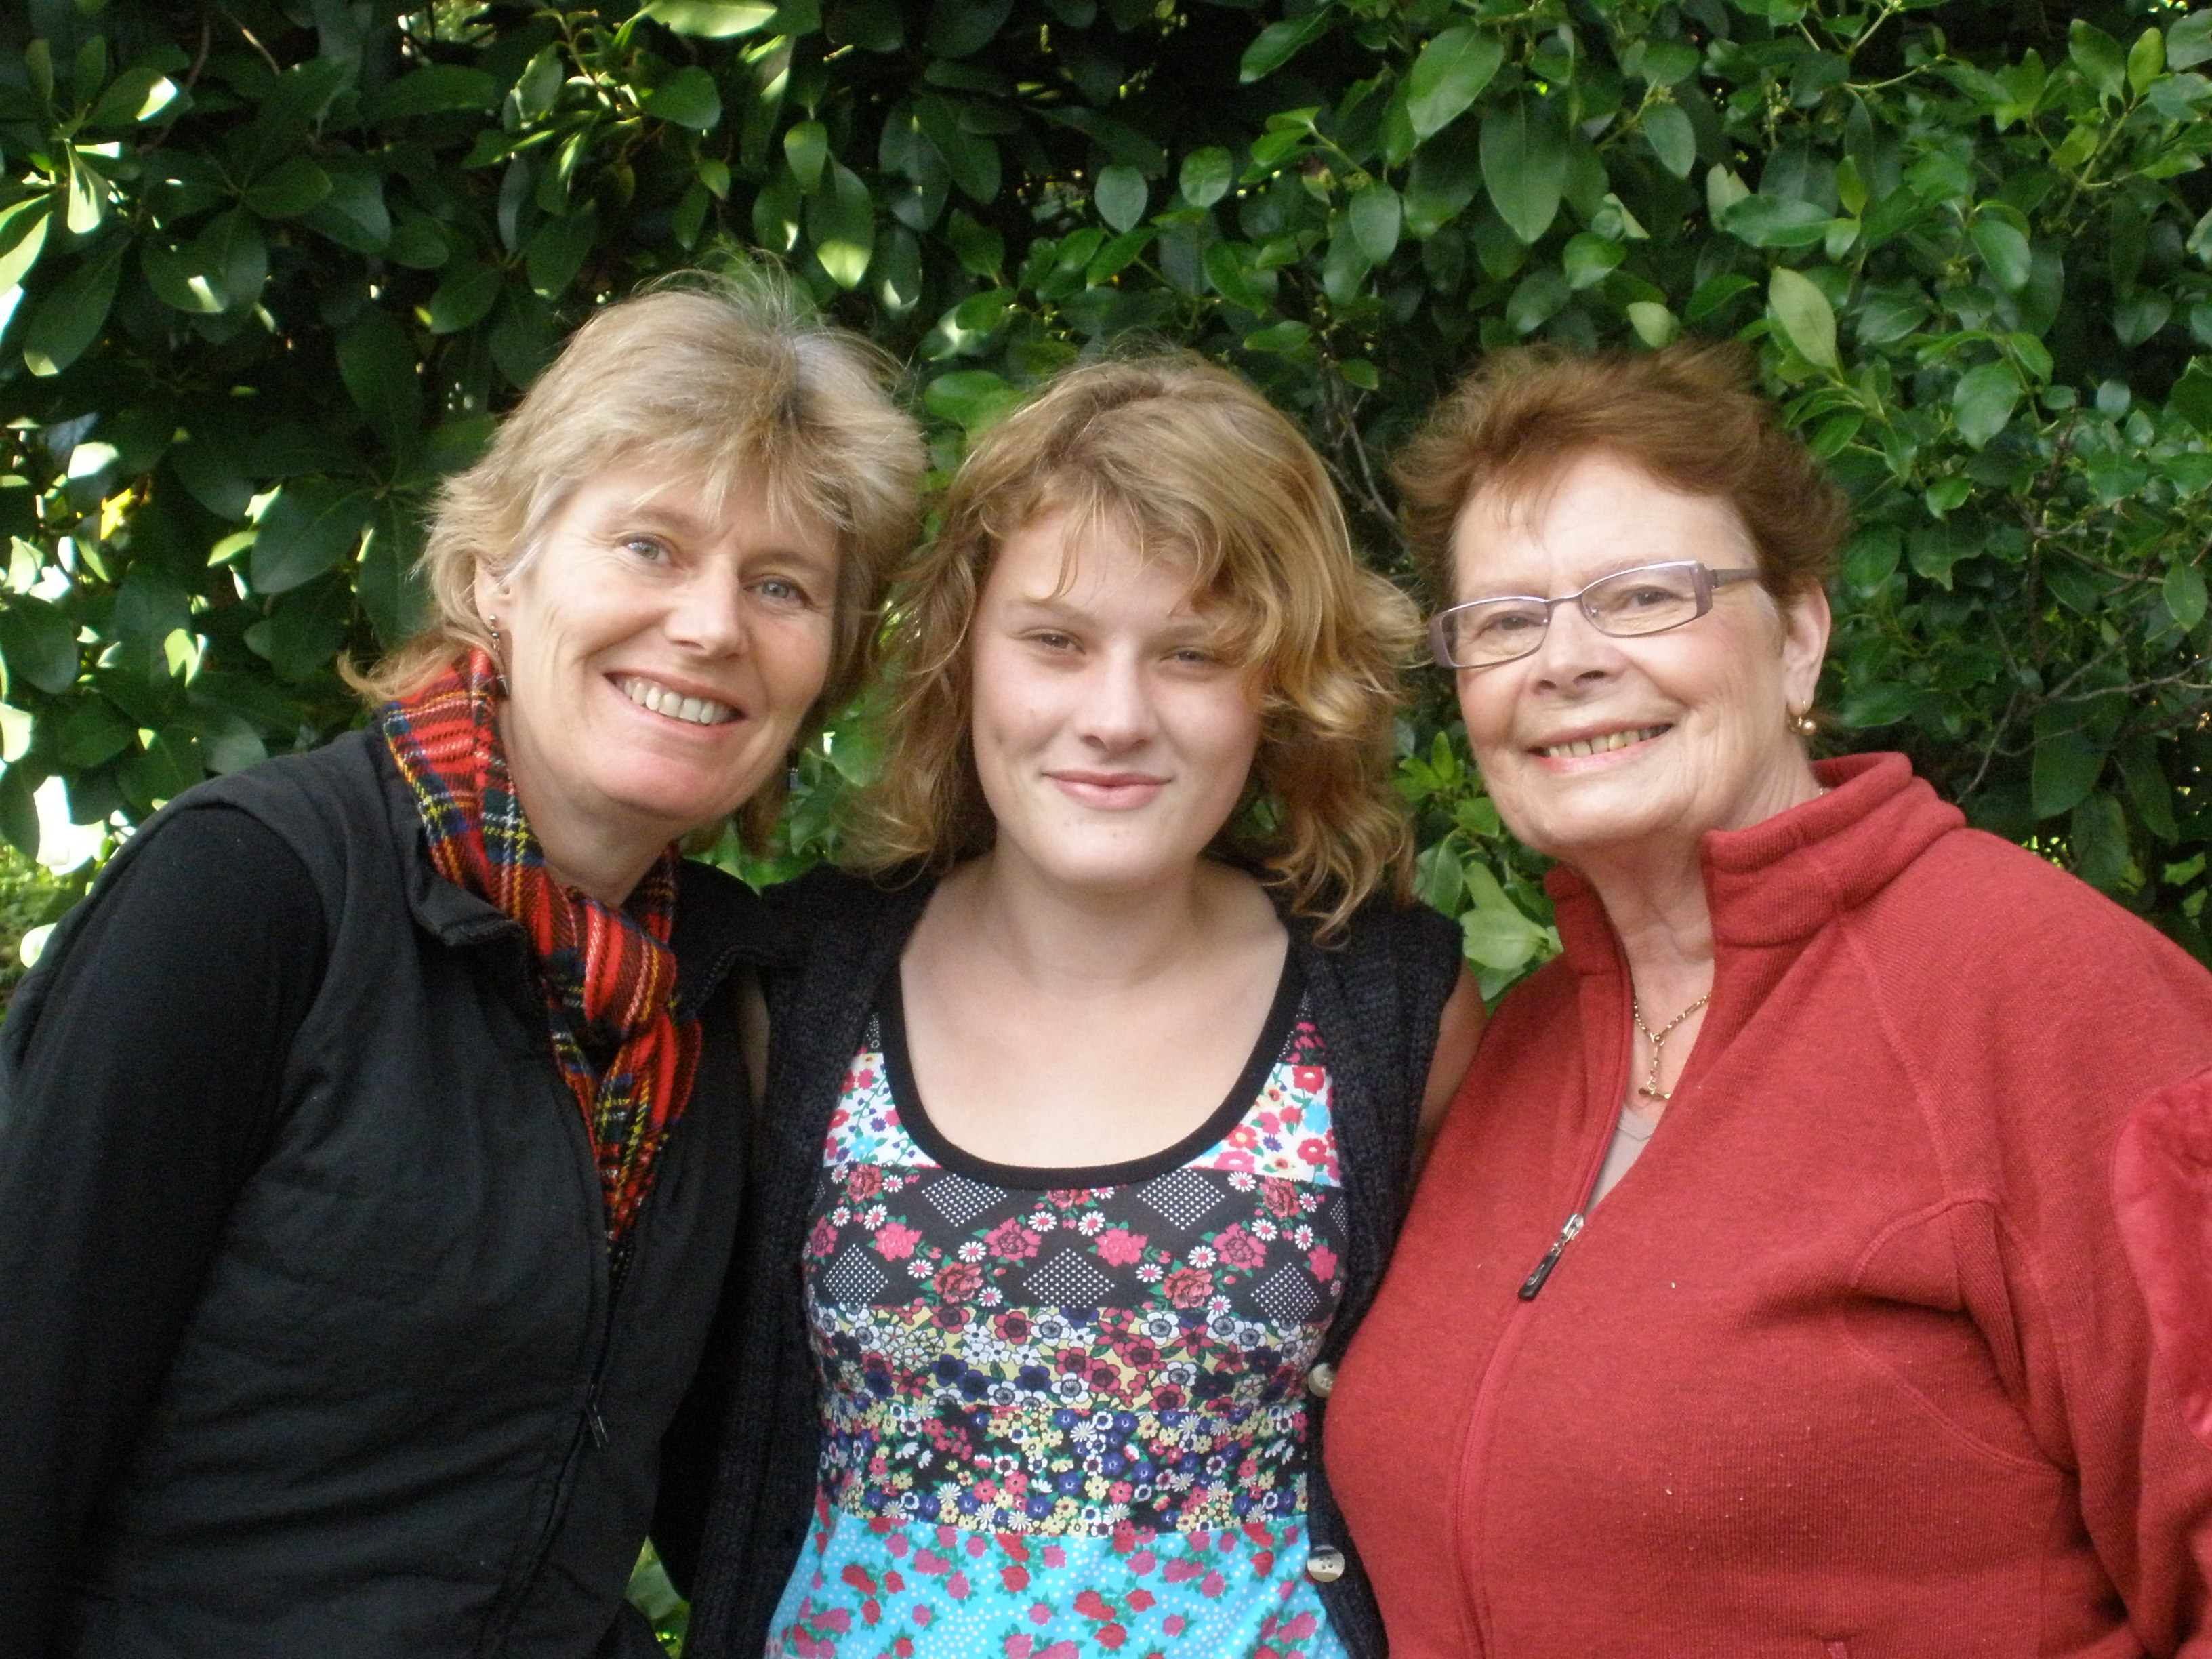 Three generations in one show!